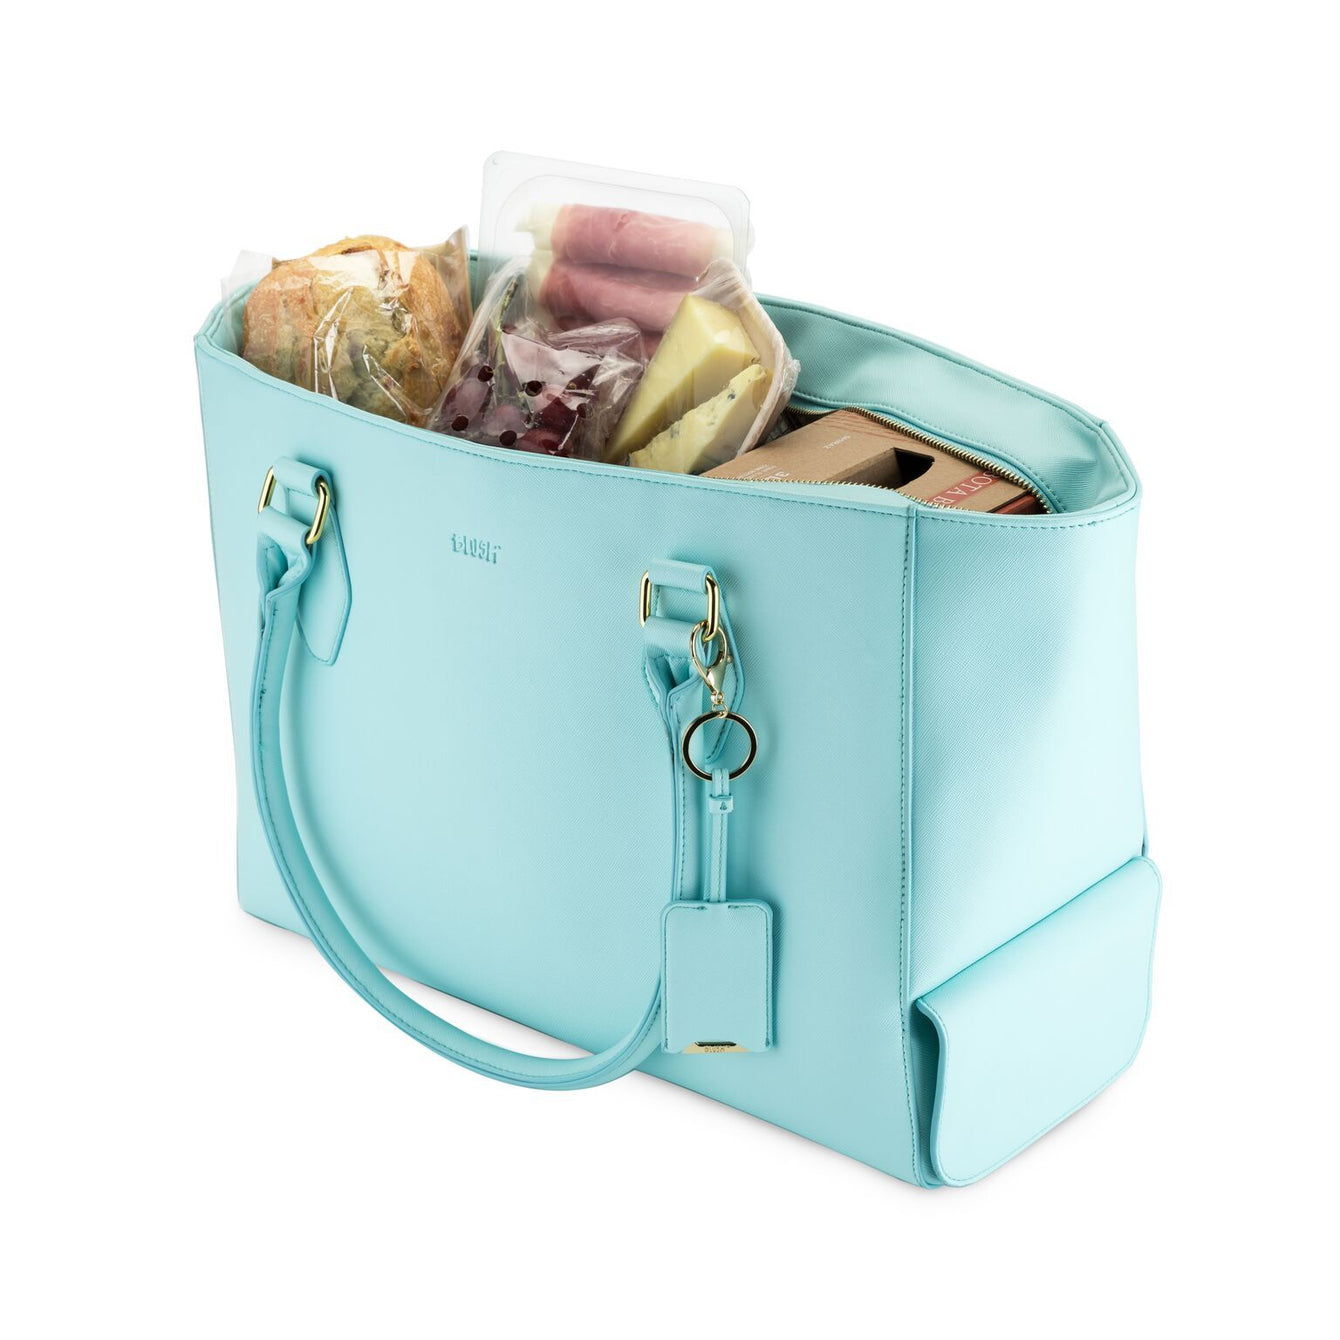 Insulated Cooler Wine Chiller Tote-Home - Travel + Outdoors - Insulated Beverage Carriers-BLUSH-Aqua-Peccadilly